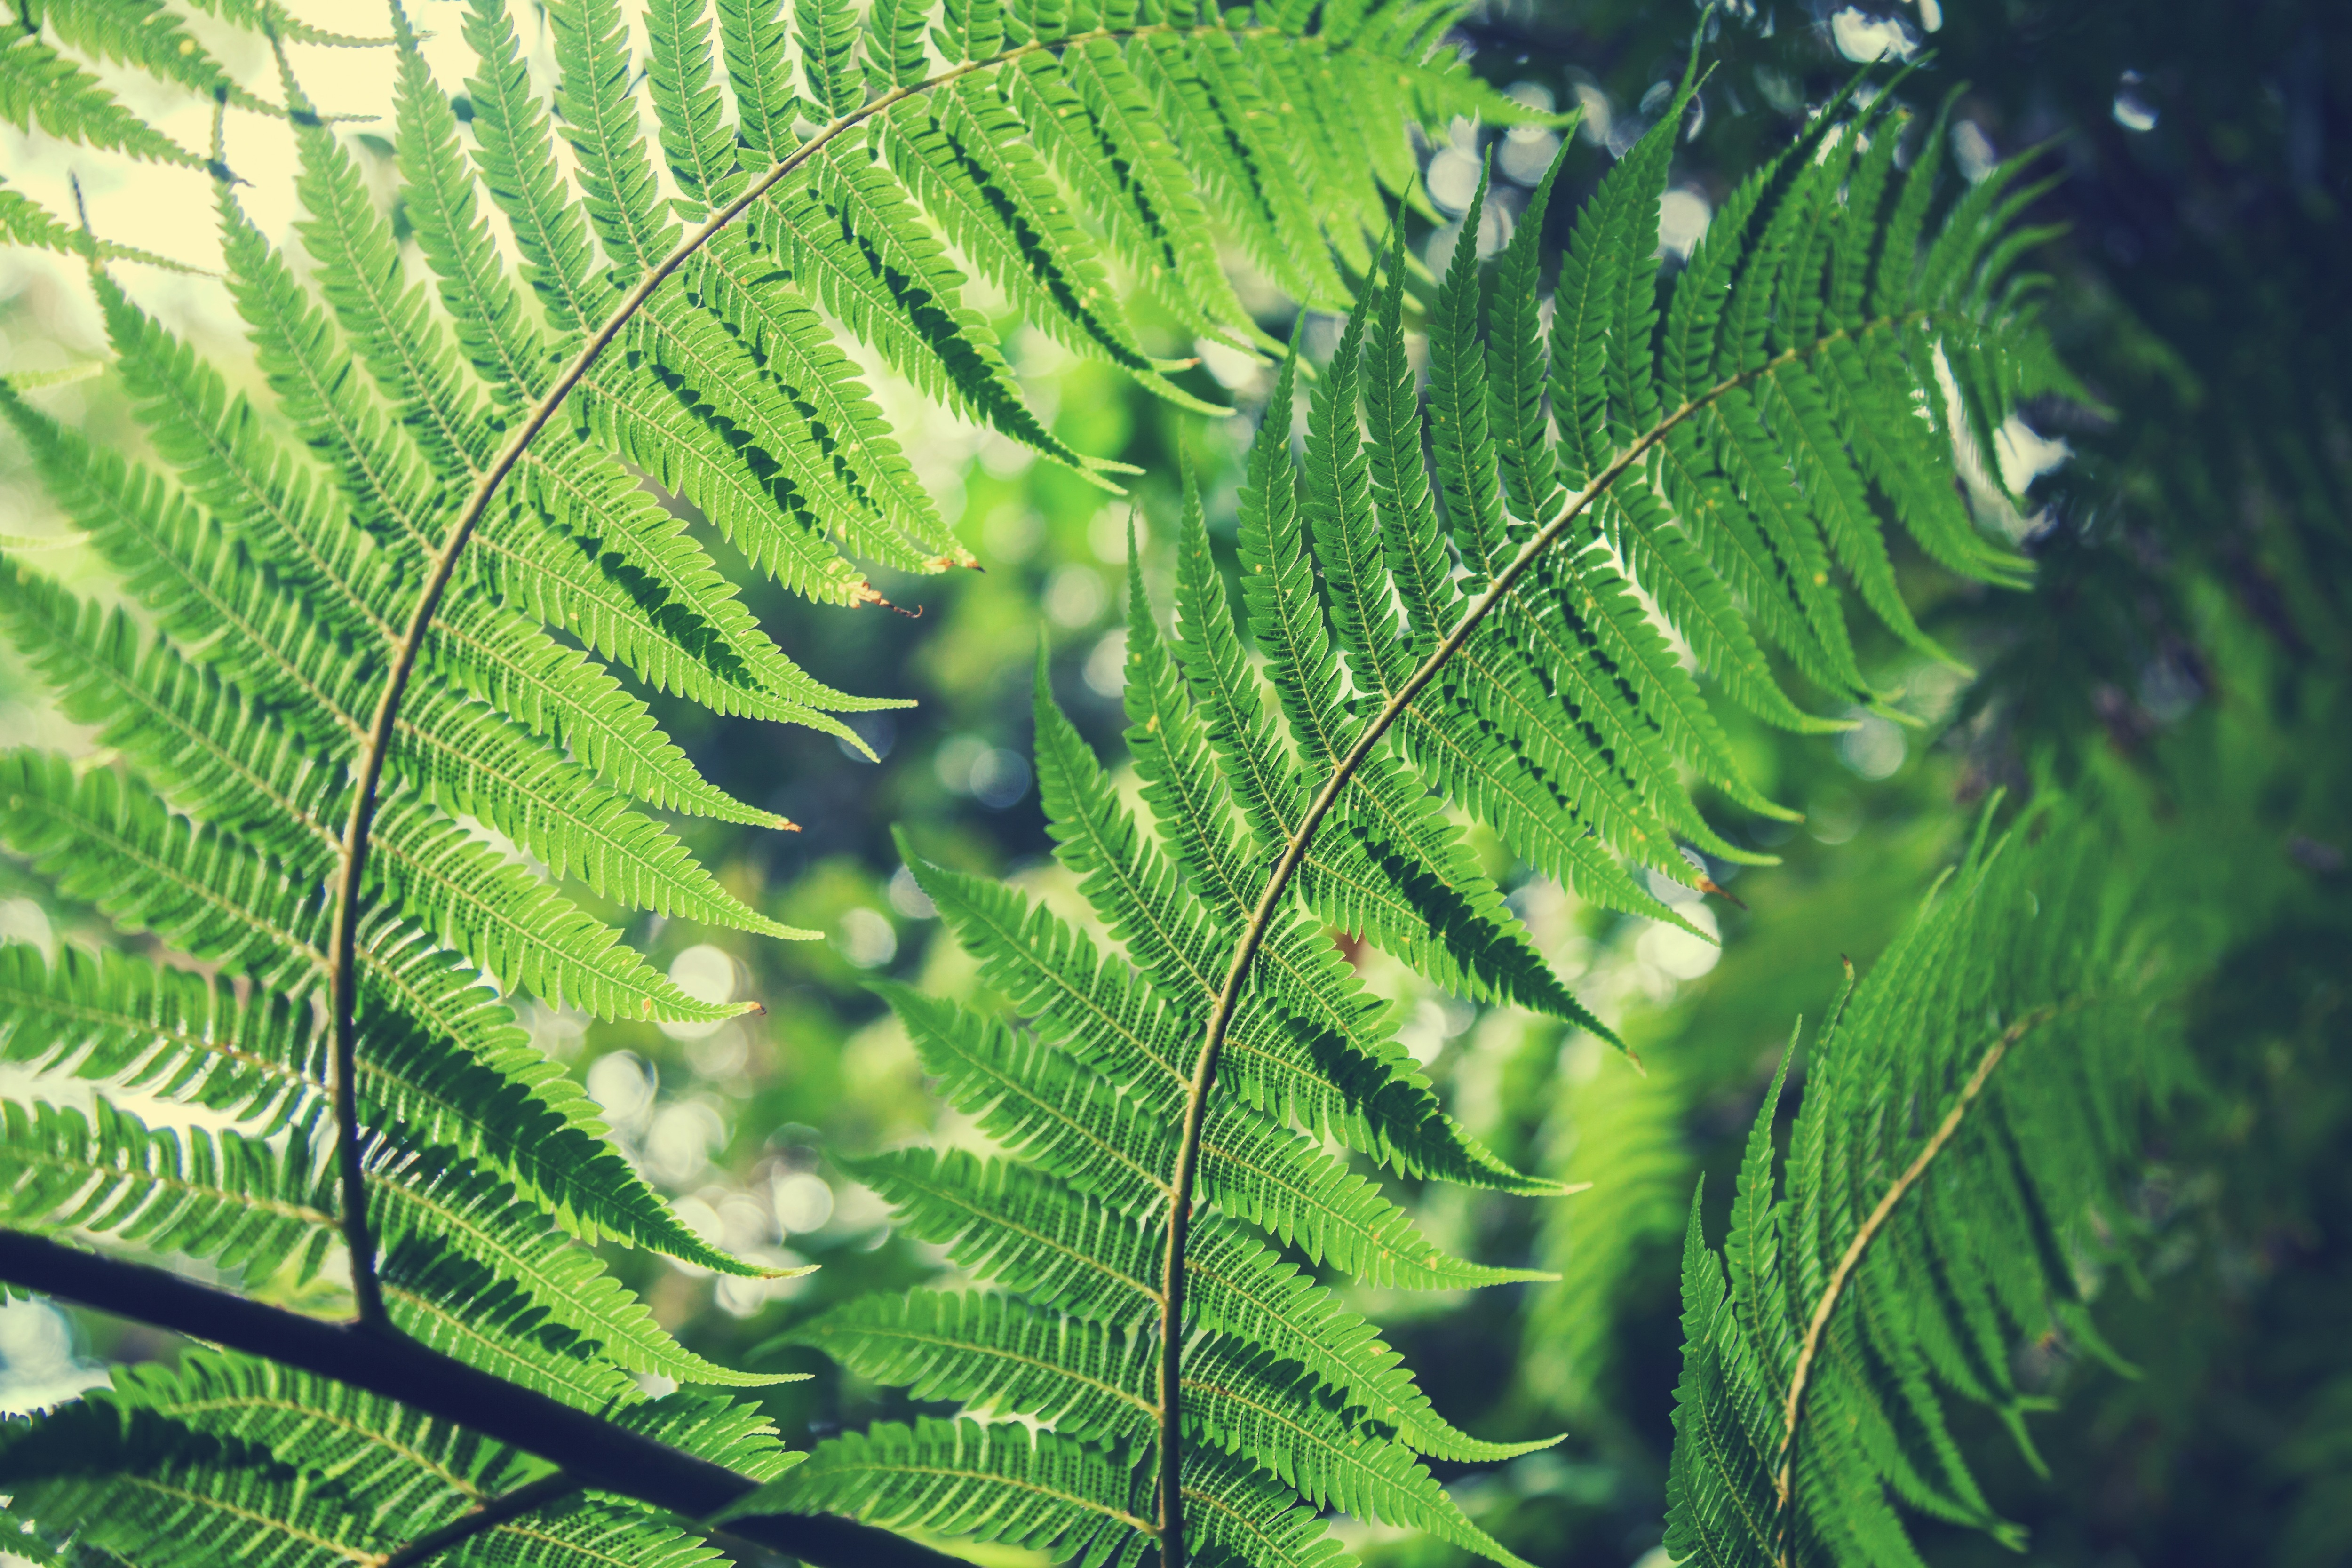 Fern 4k Ultra Hd Wallpaper Background Image 5000x3333